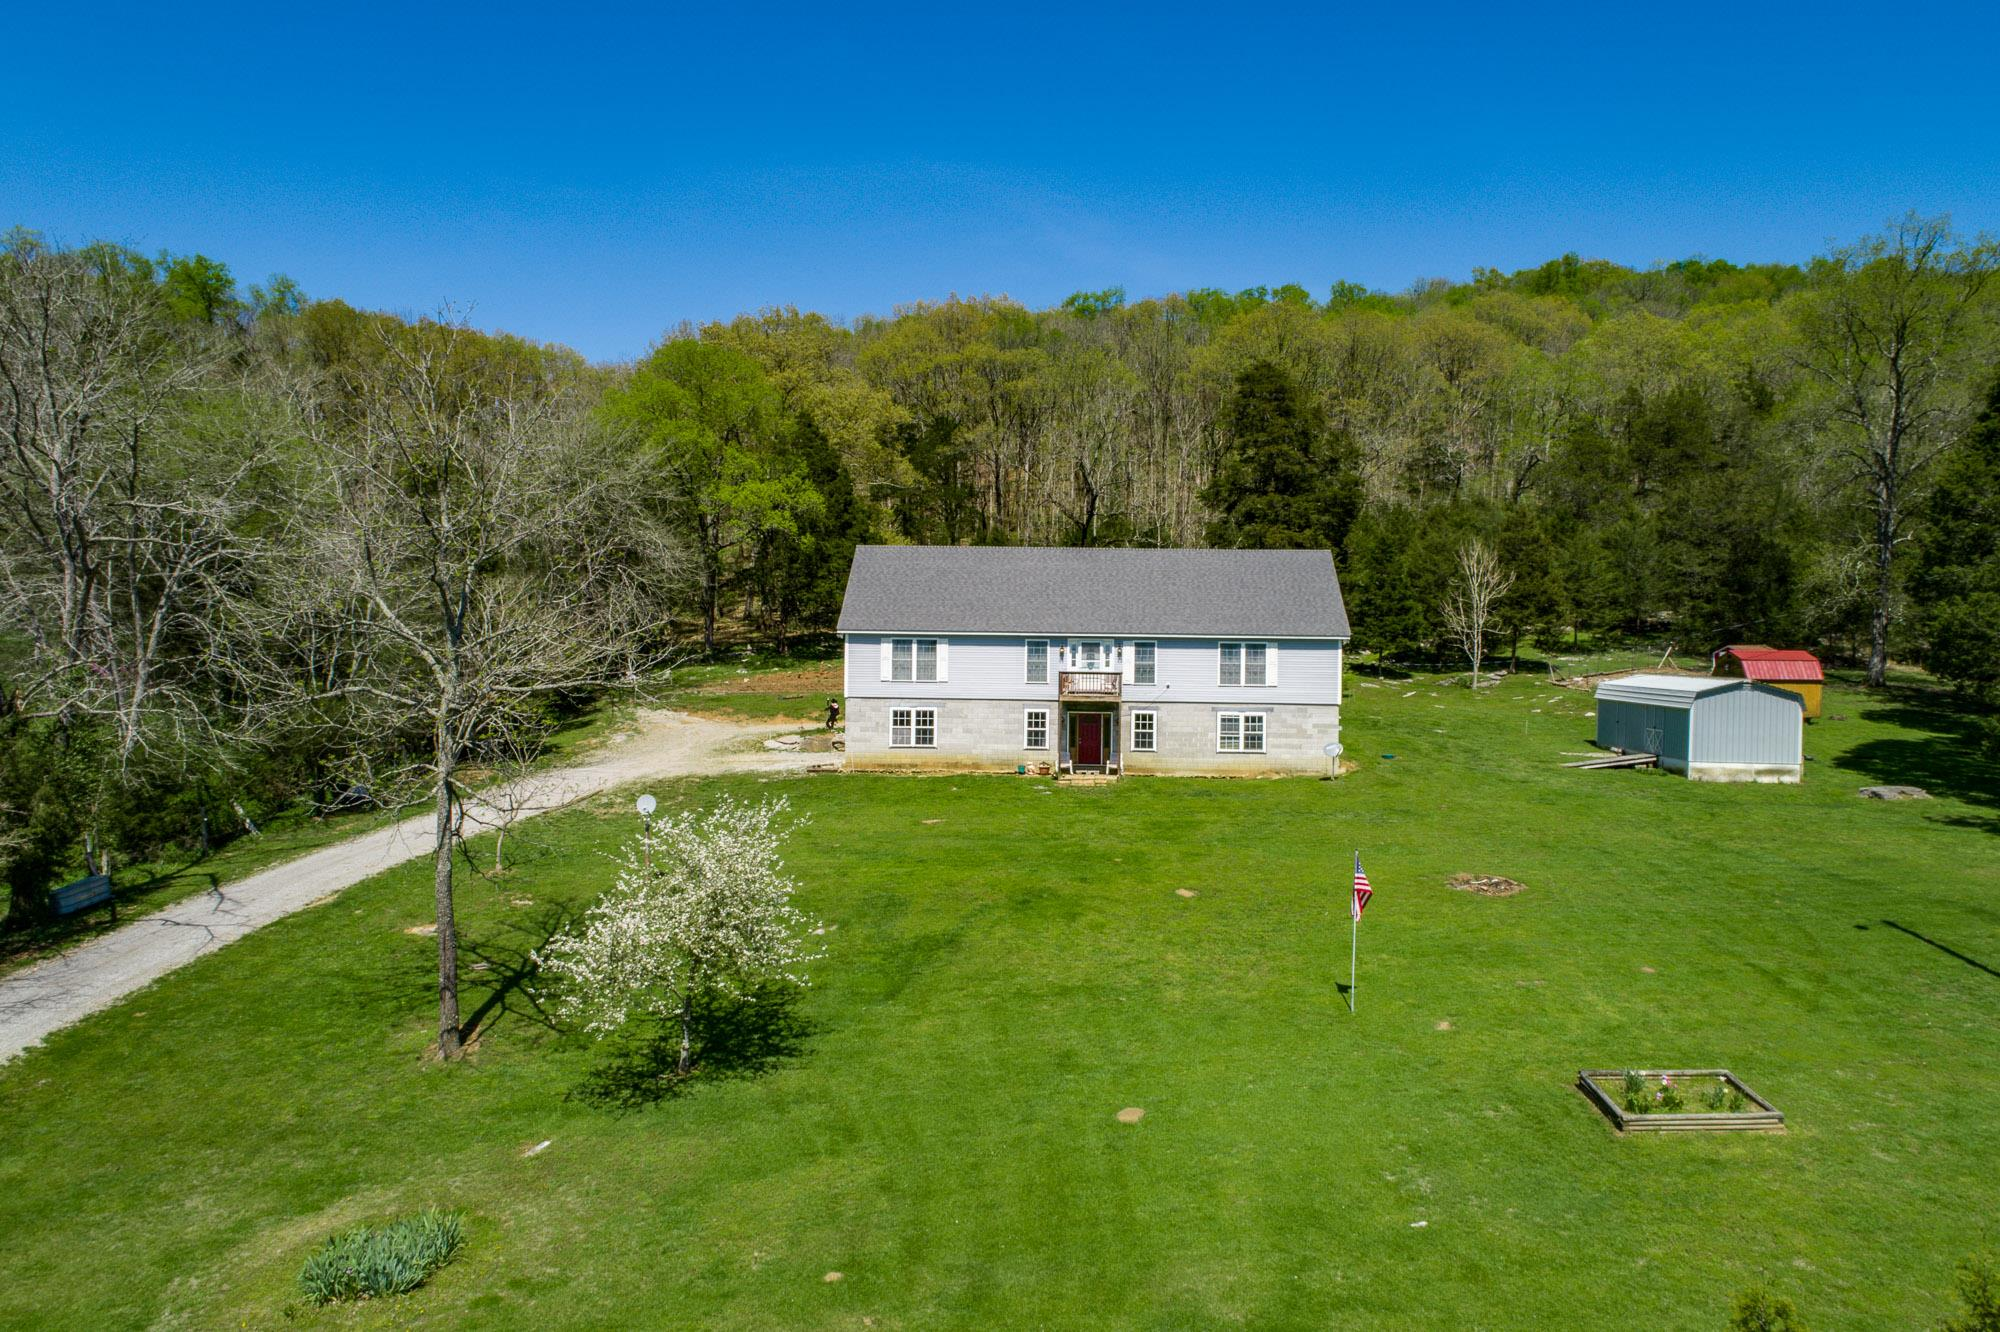 214 E Valley Rd, Pikeville, TN 37367 - Pikeville, TN real estate listing